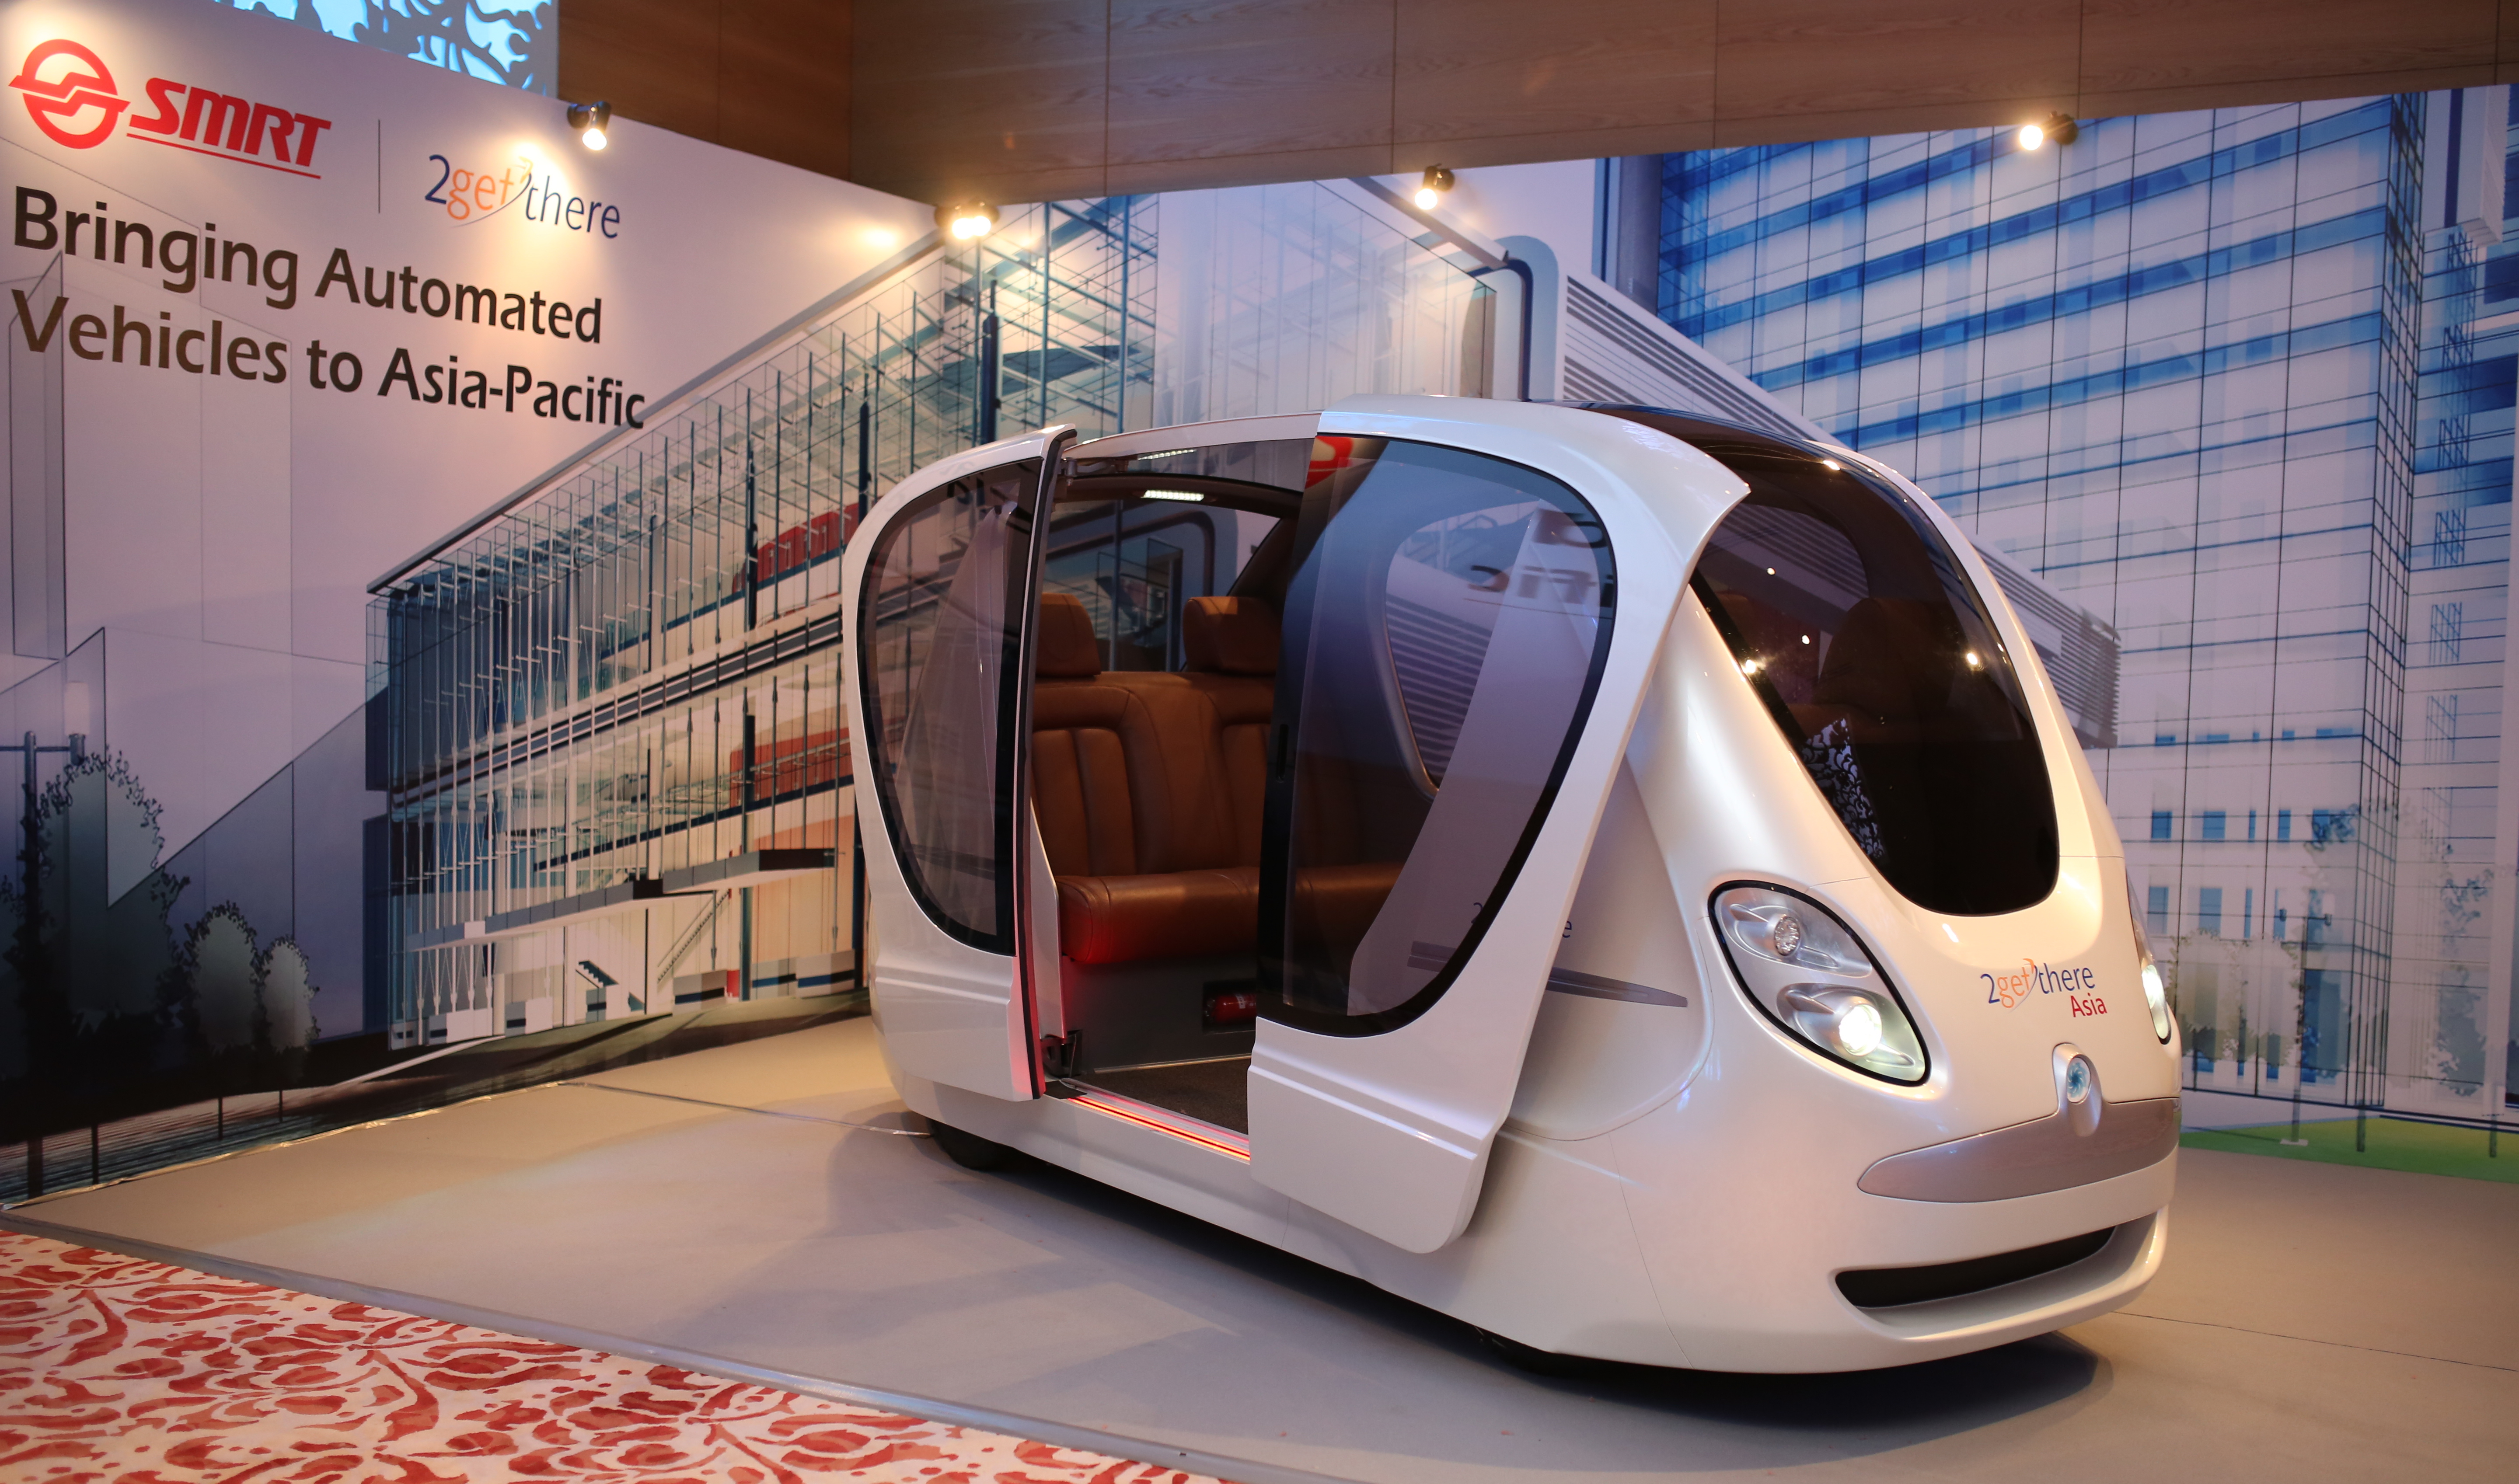 Singapore Smrt To Introduce Driverless Public Transport By